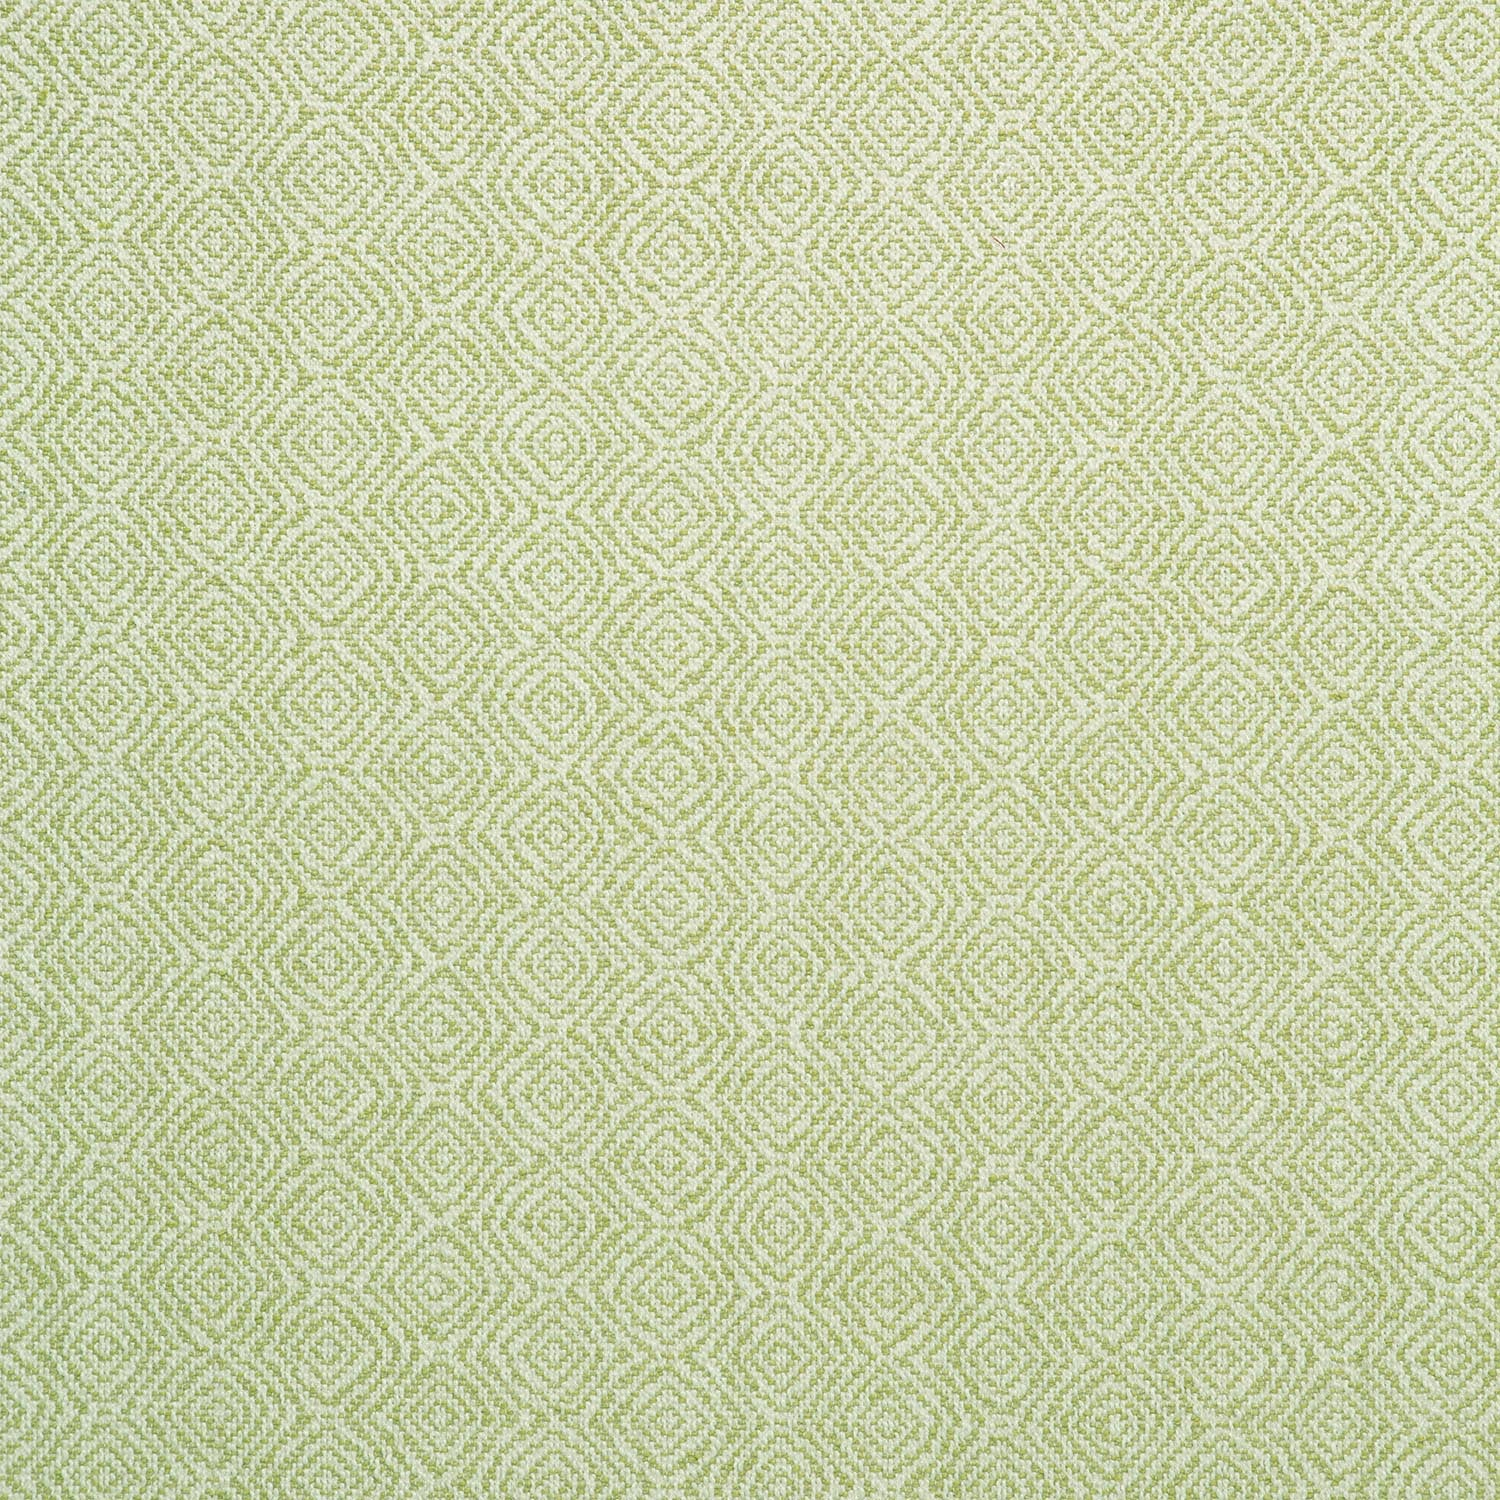 Fabric swatch of a bright green and white geometric weave fabric for upholstery